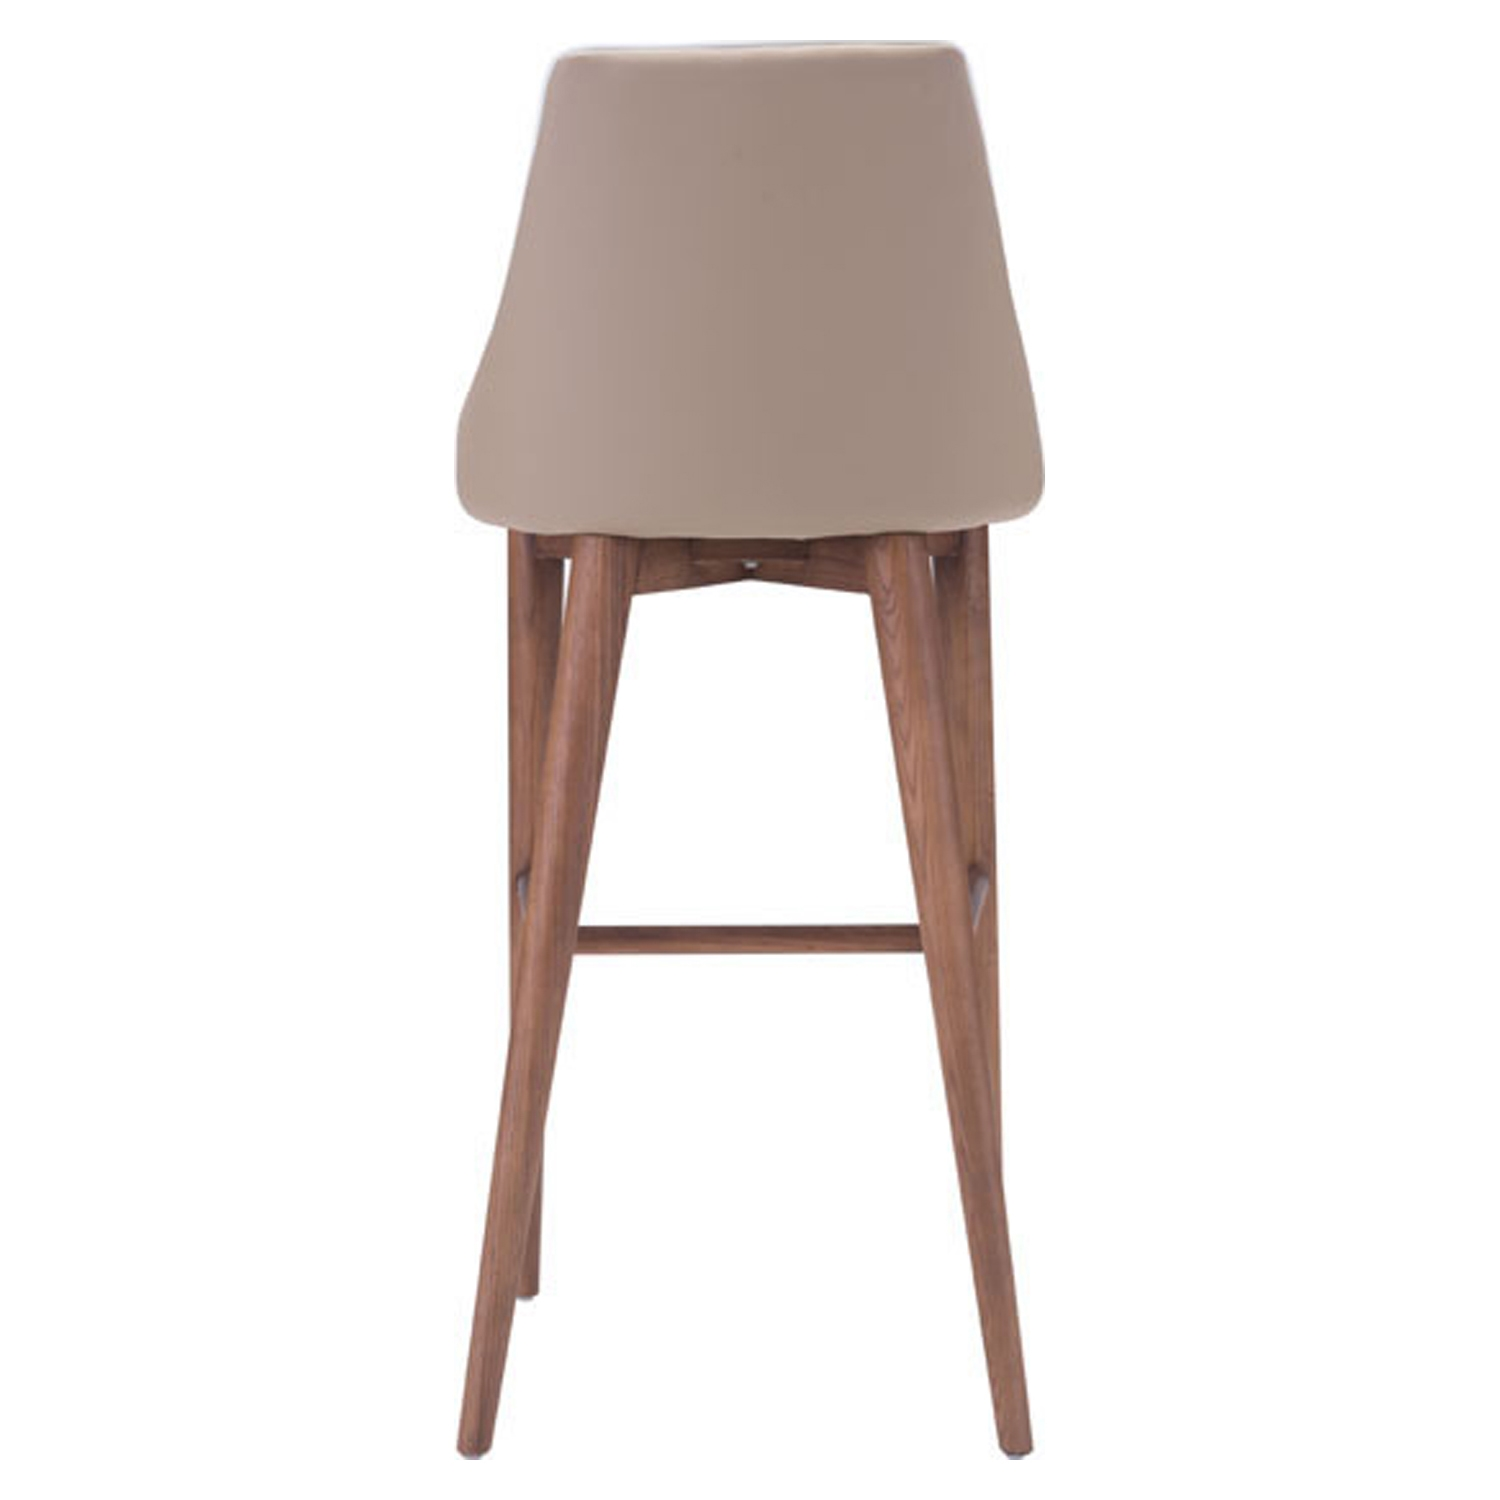 Moor Bar Chair - Beige - ZM-100281